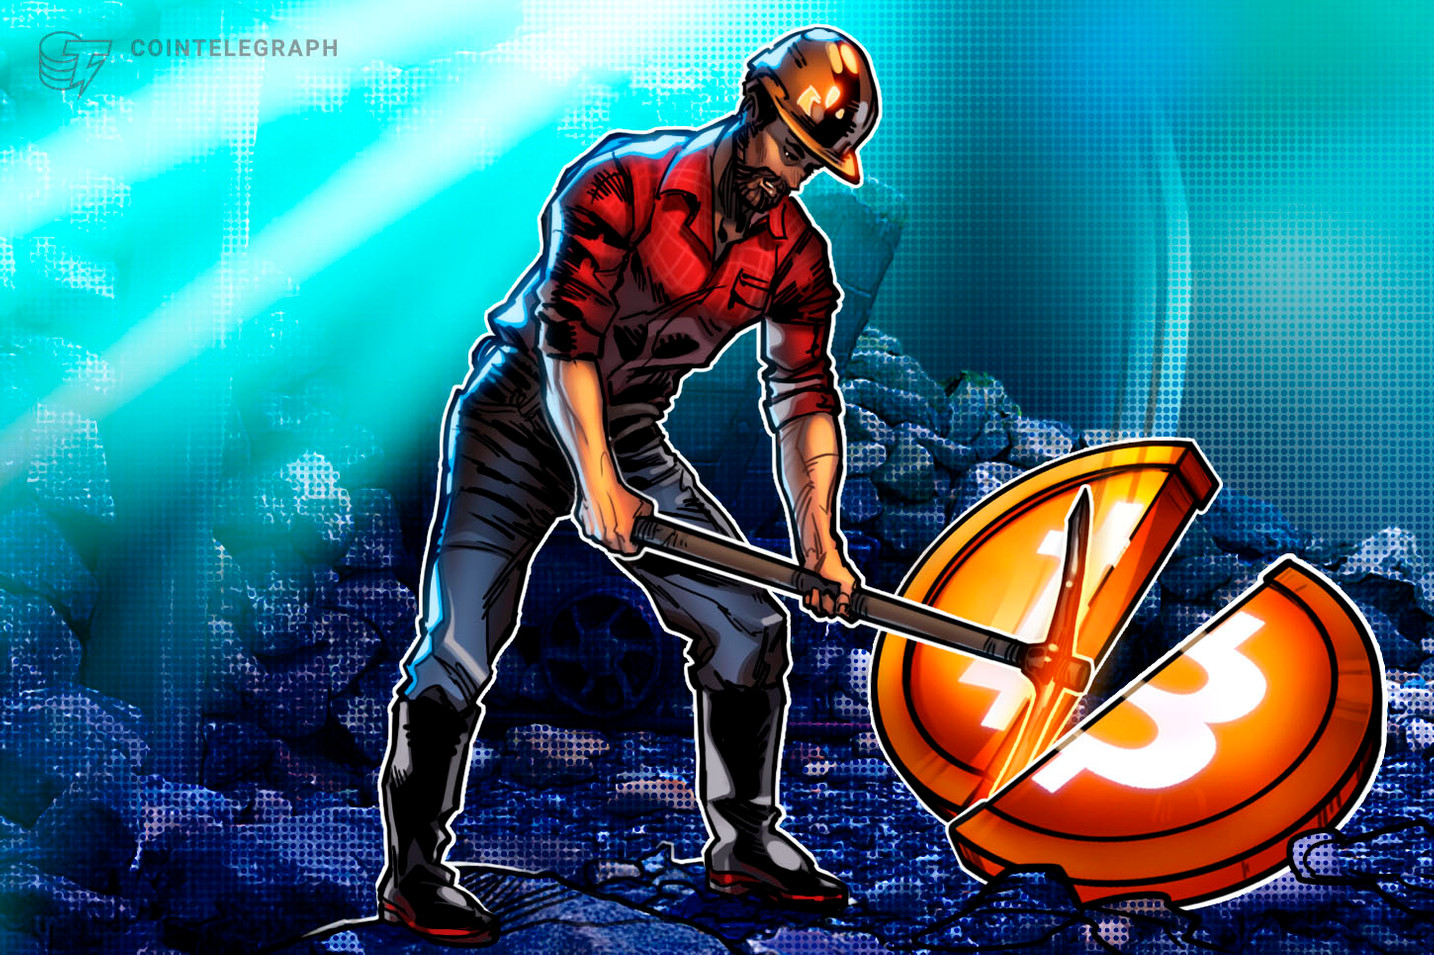 Bitcoin miner revenue surges to pre-halving levels